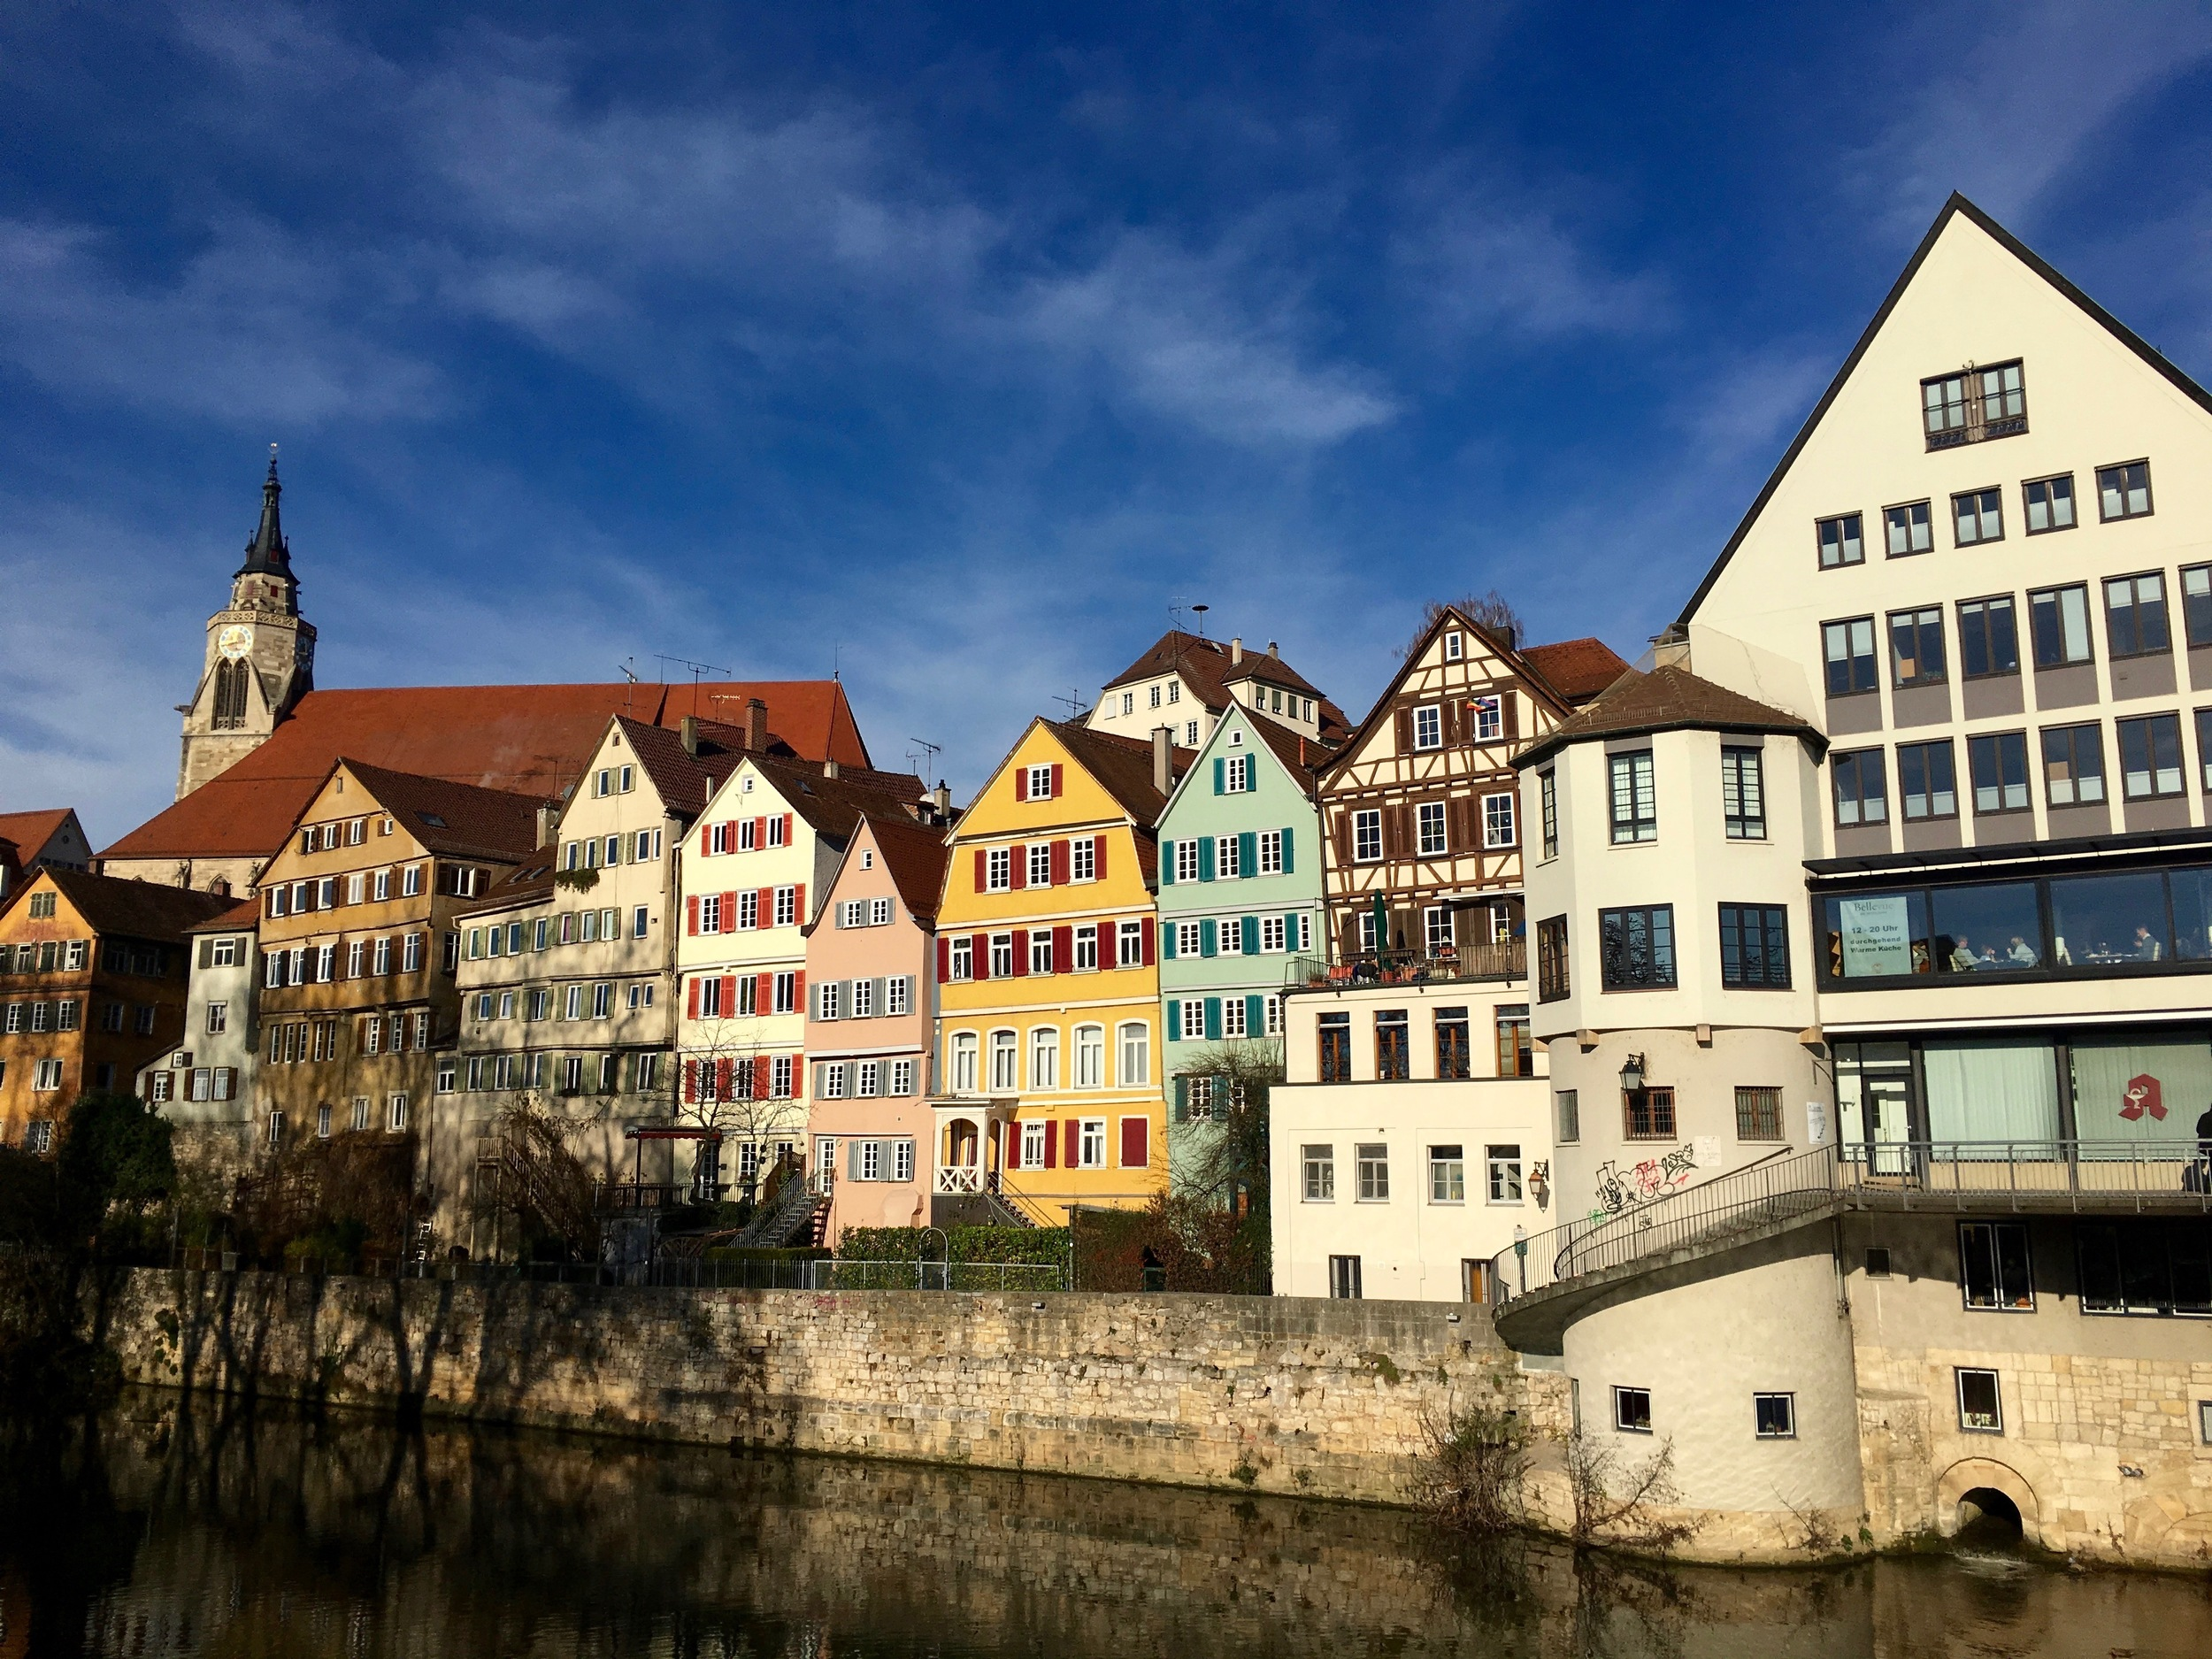 A popular shot of the colorful houses along the Neckar